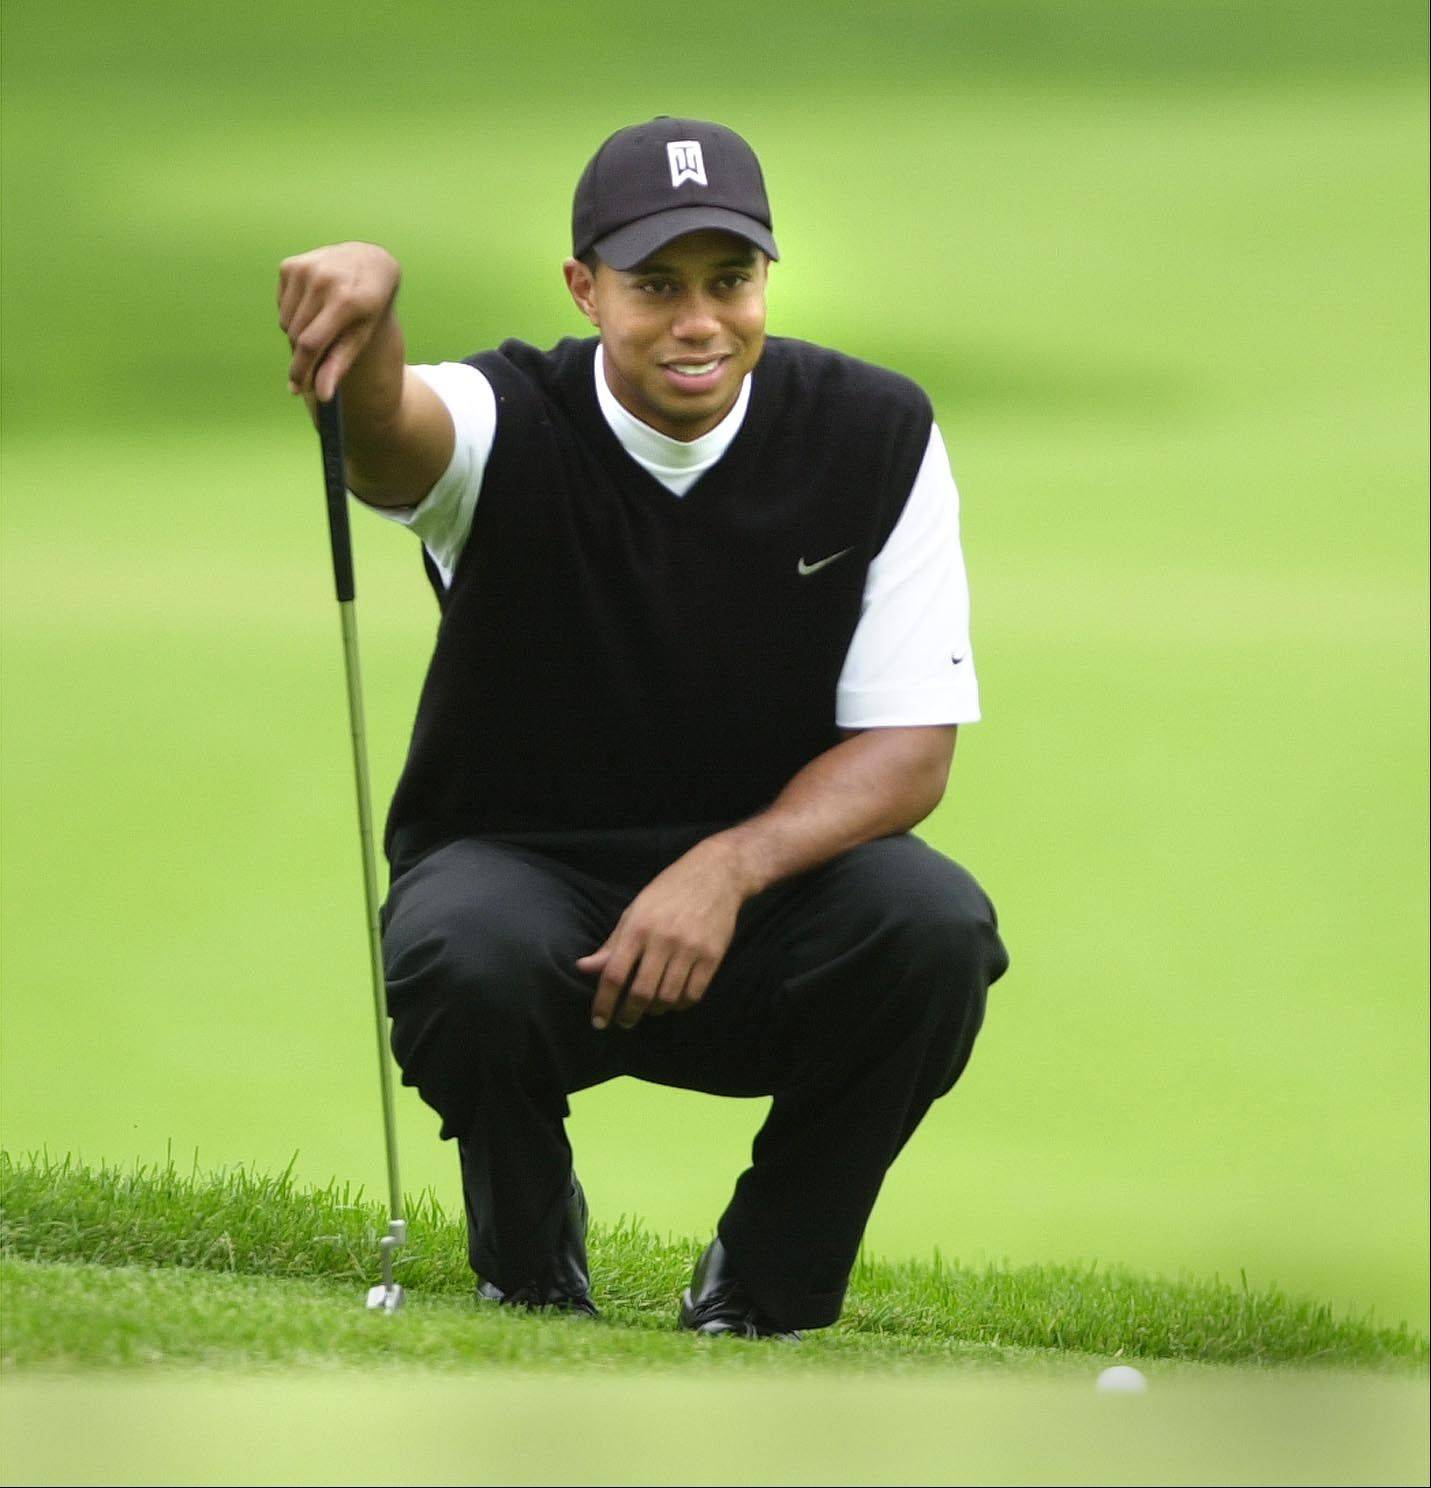 Tiger Woods finished third in the Deutsche Bank Championship to earn $544,000 and push his career total to $100,350,700.